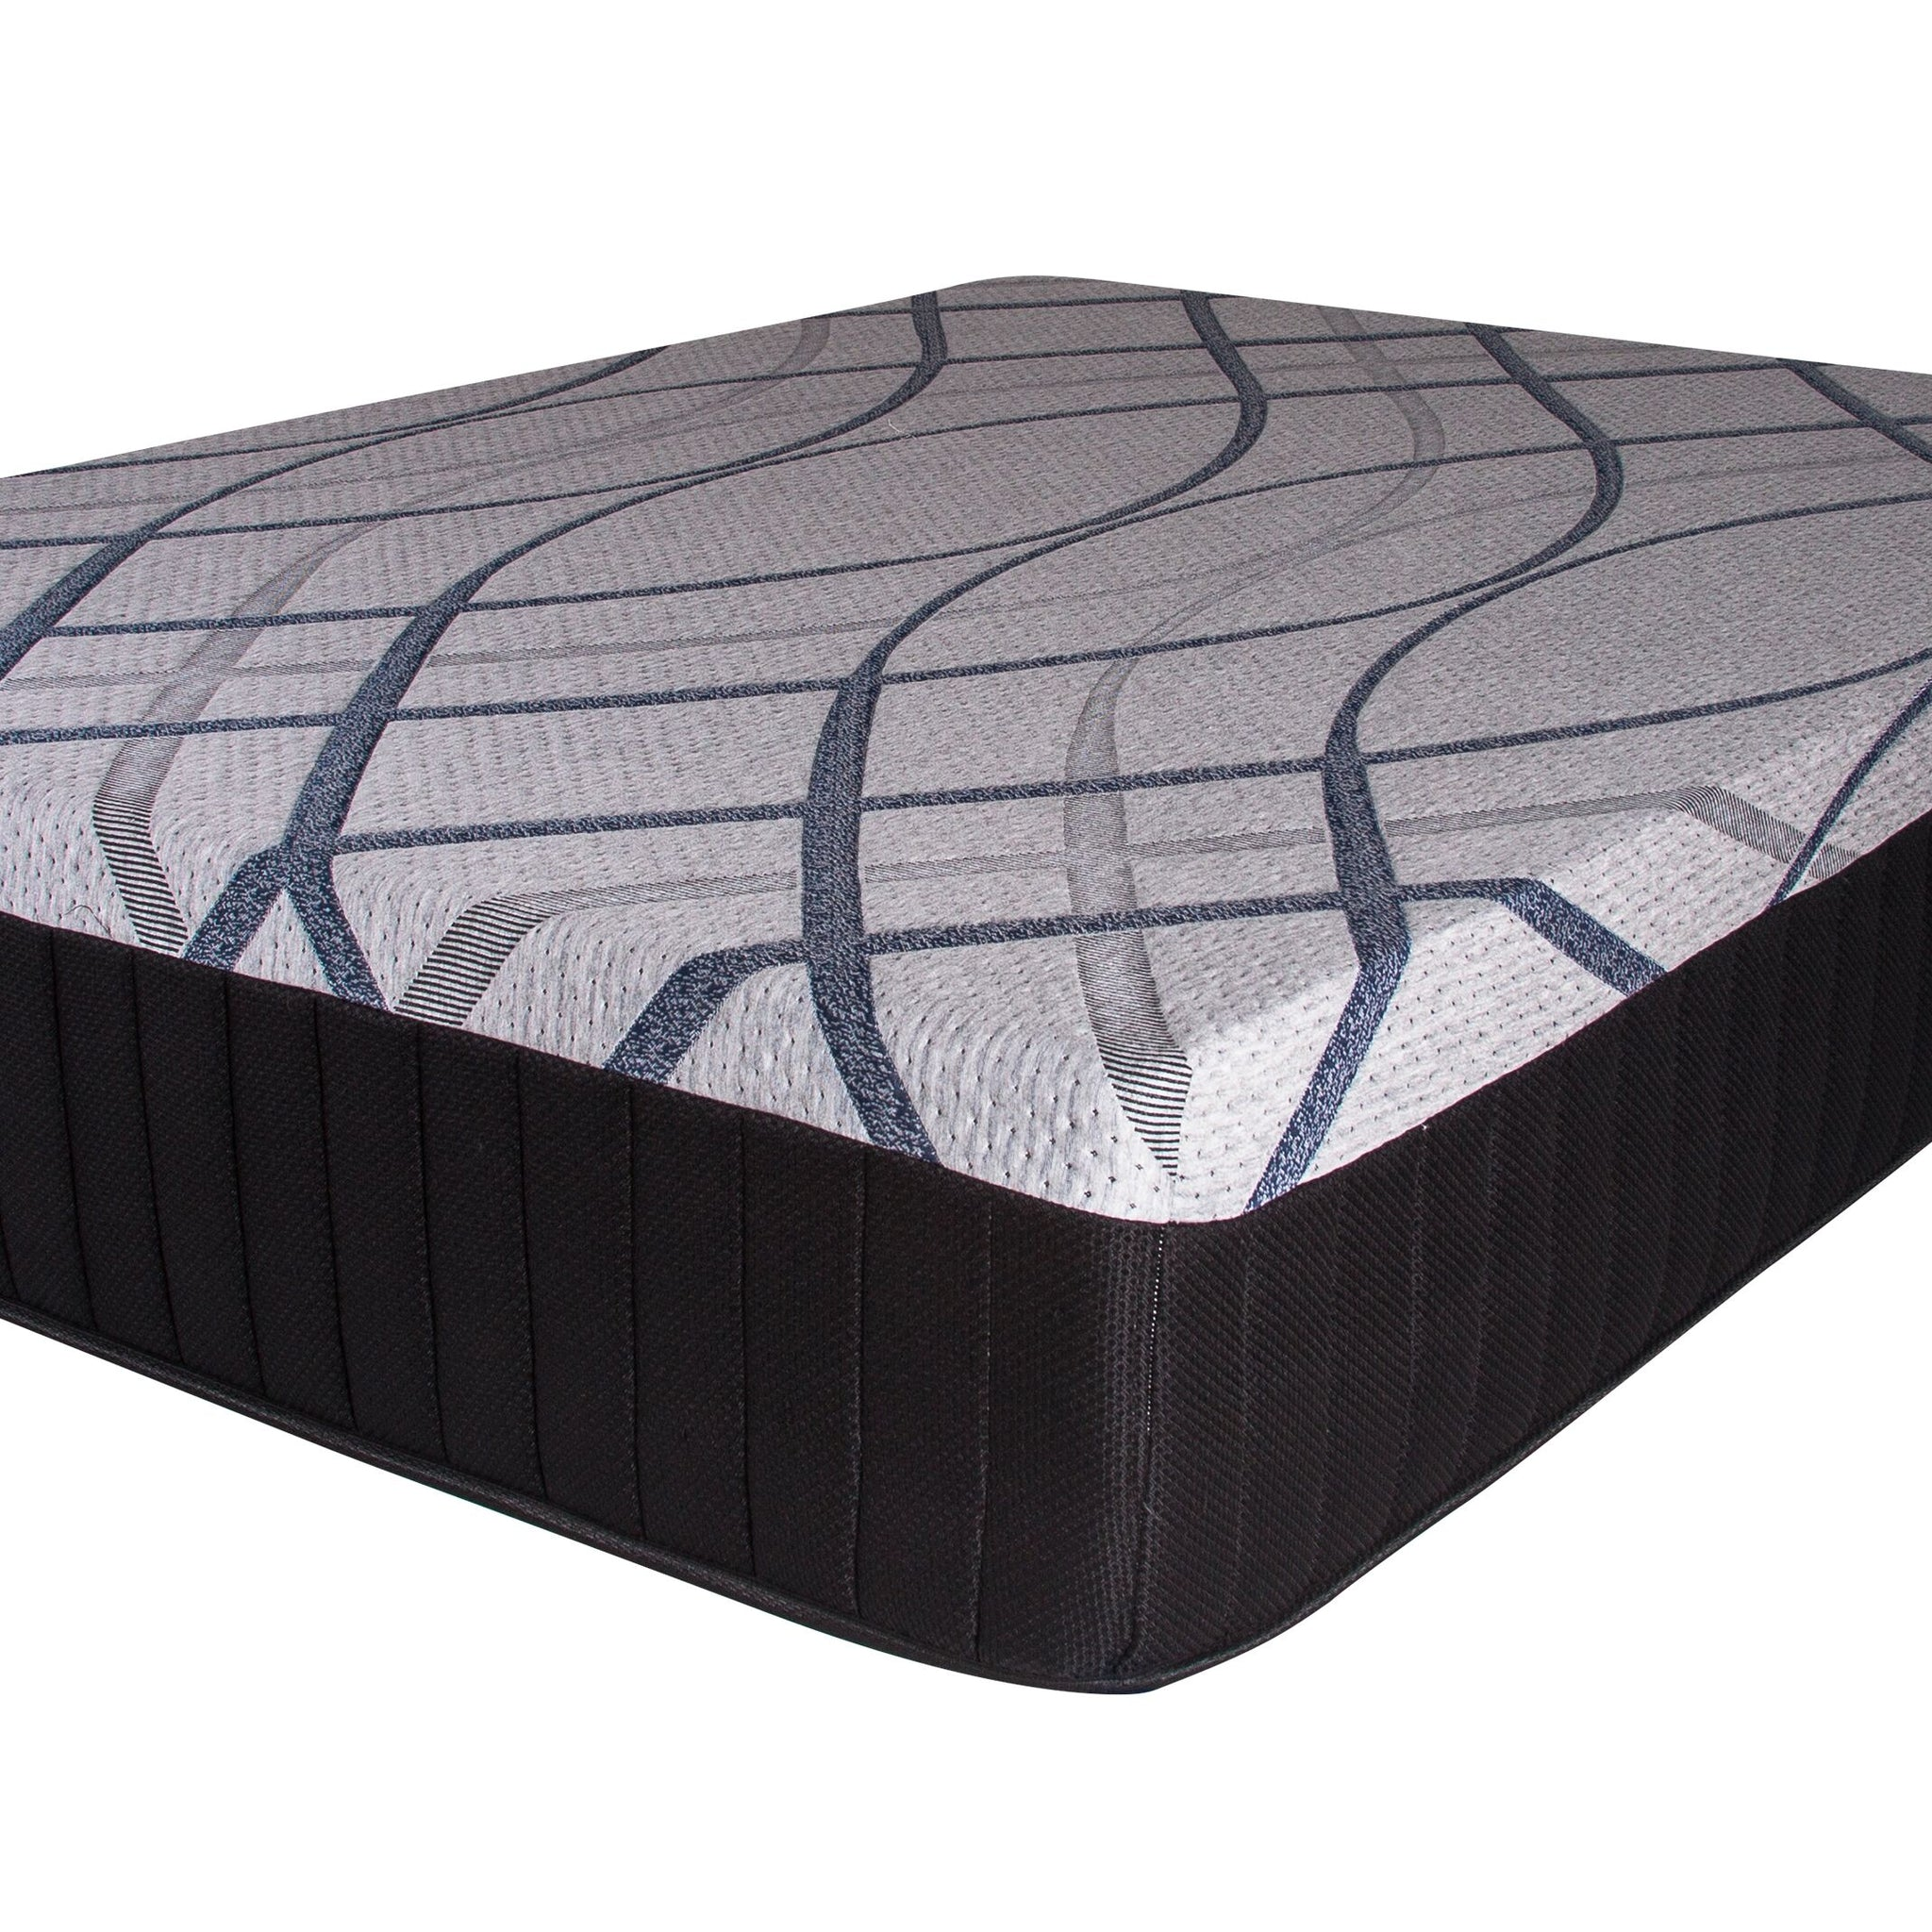 mattresses visco skil foam l mattress care p